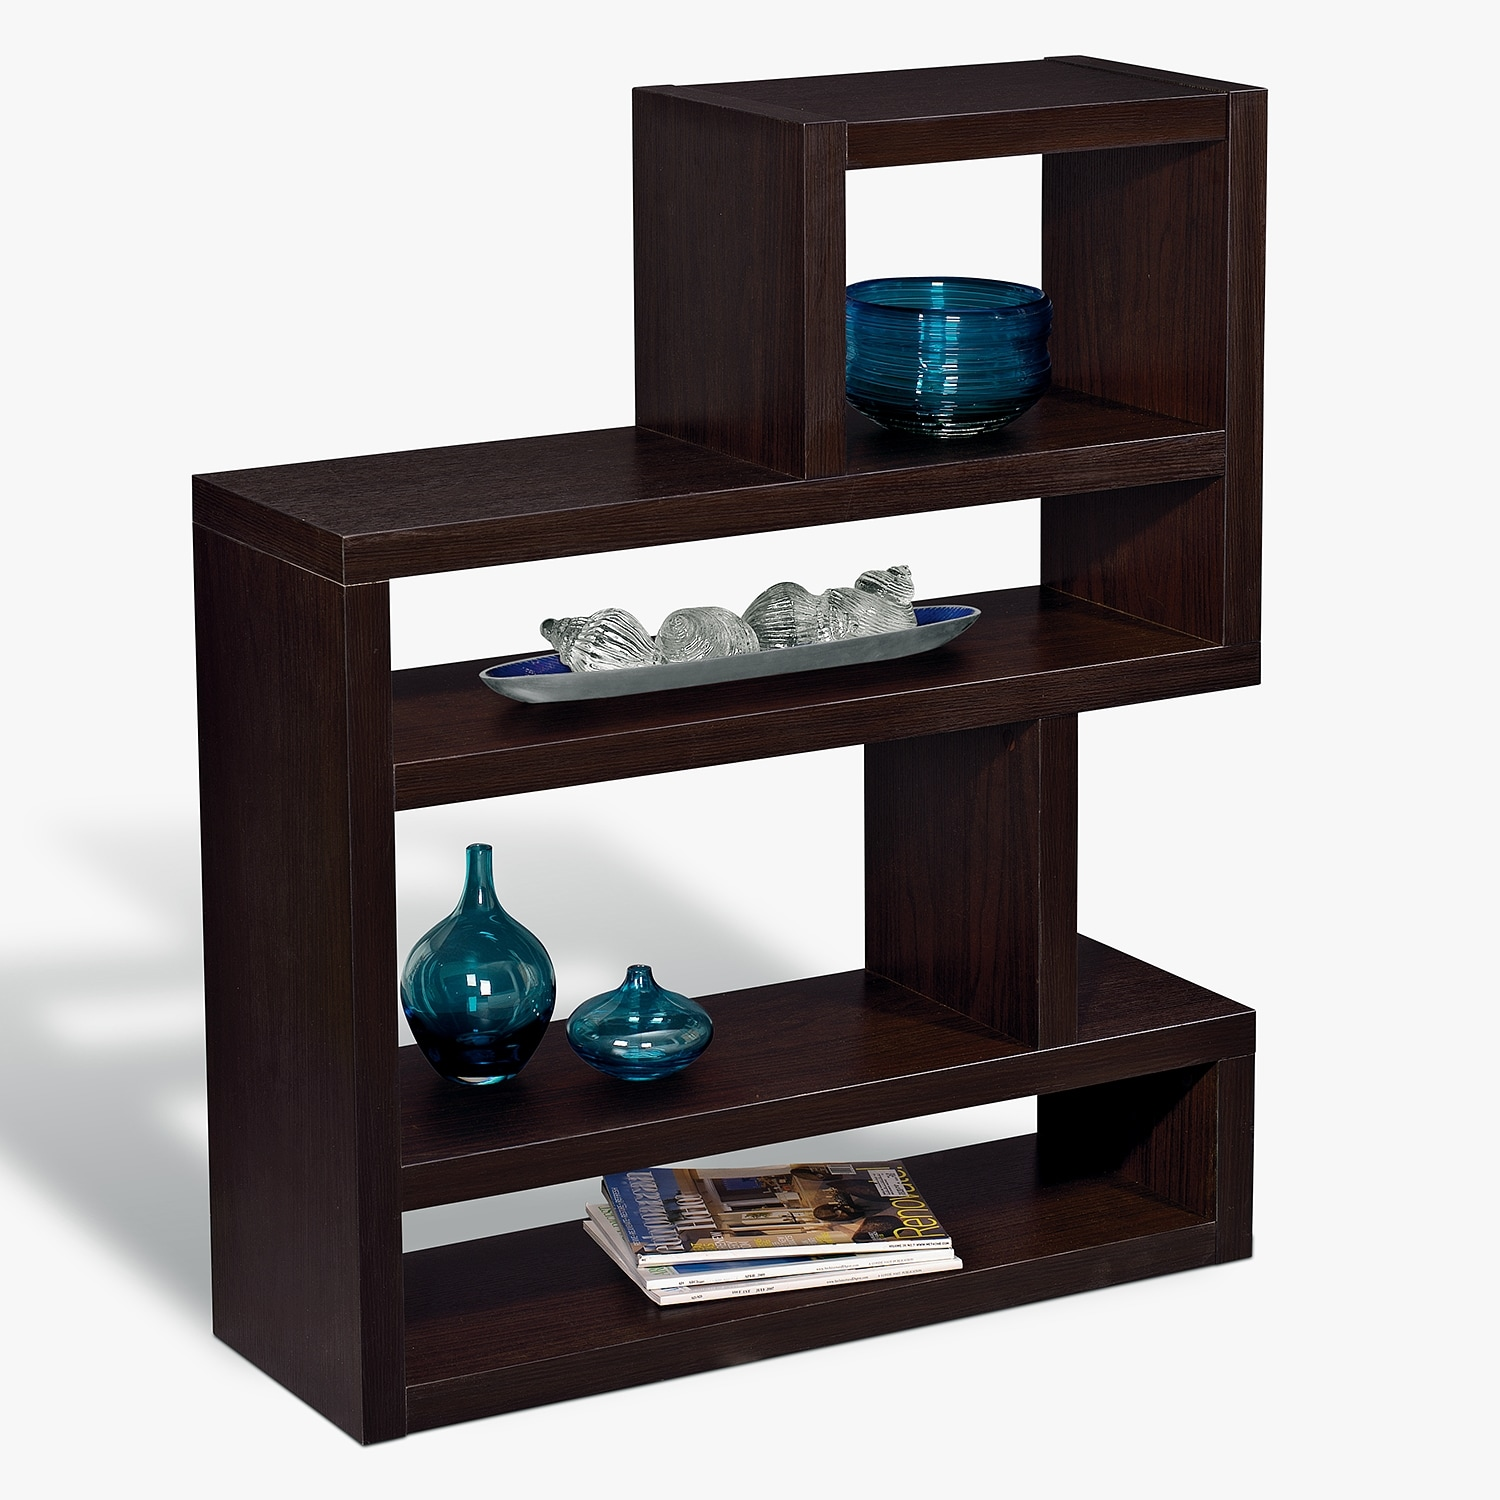 Accent Furniture Bookcase Native Home Garden Design